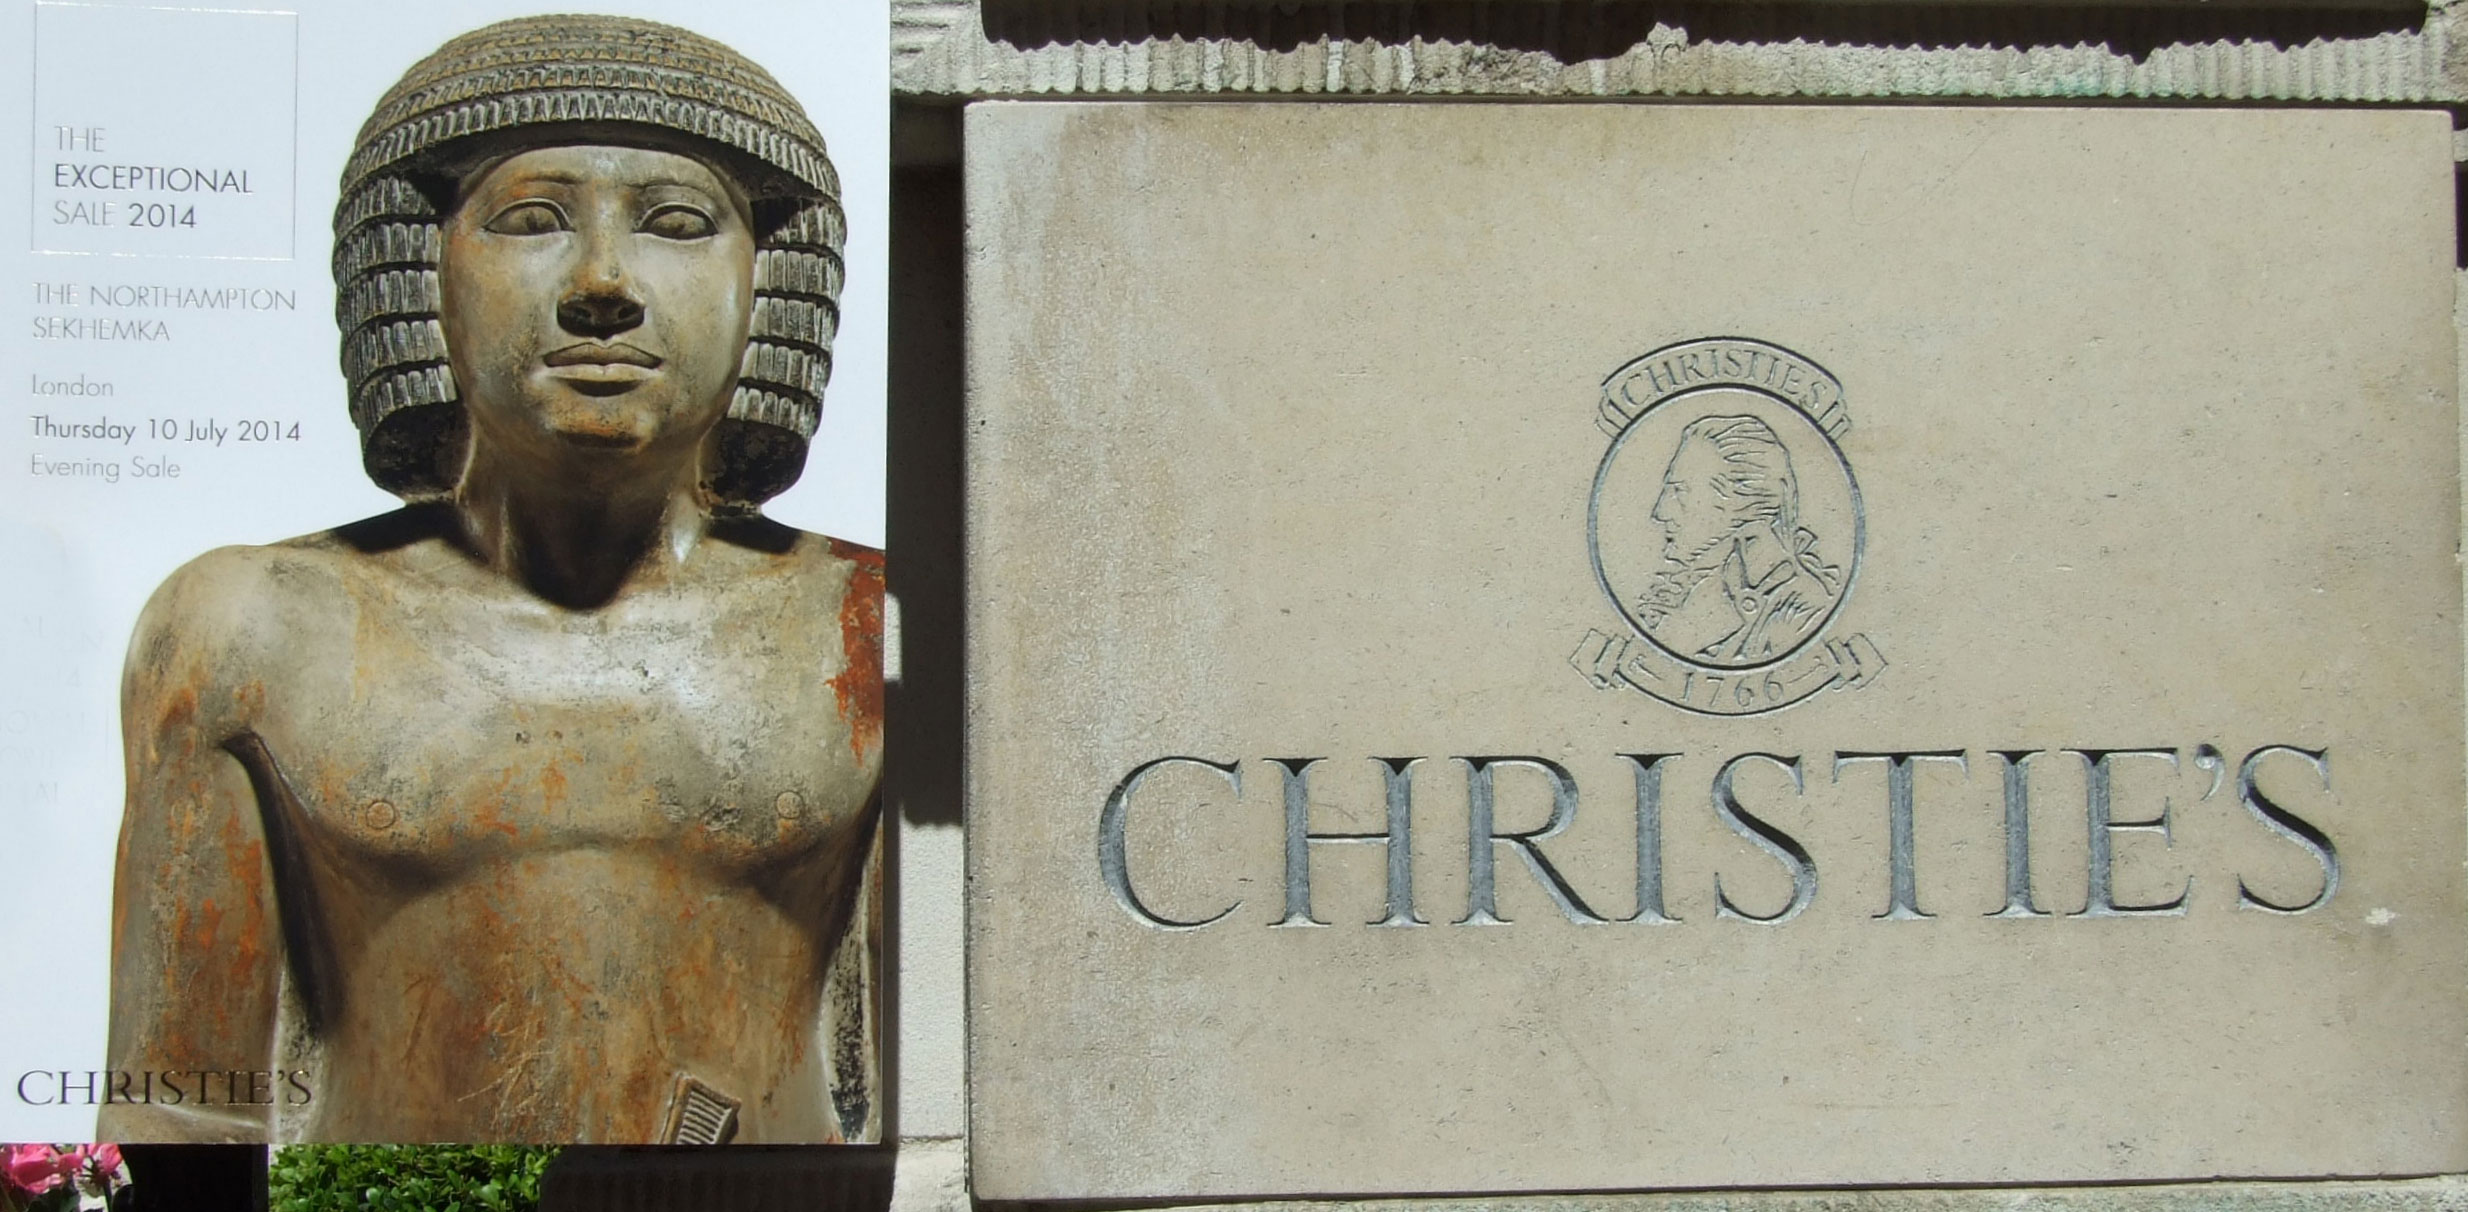 SEKHEMKA-CHRISTIES